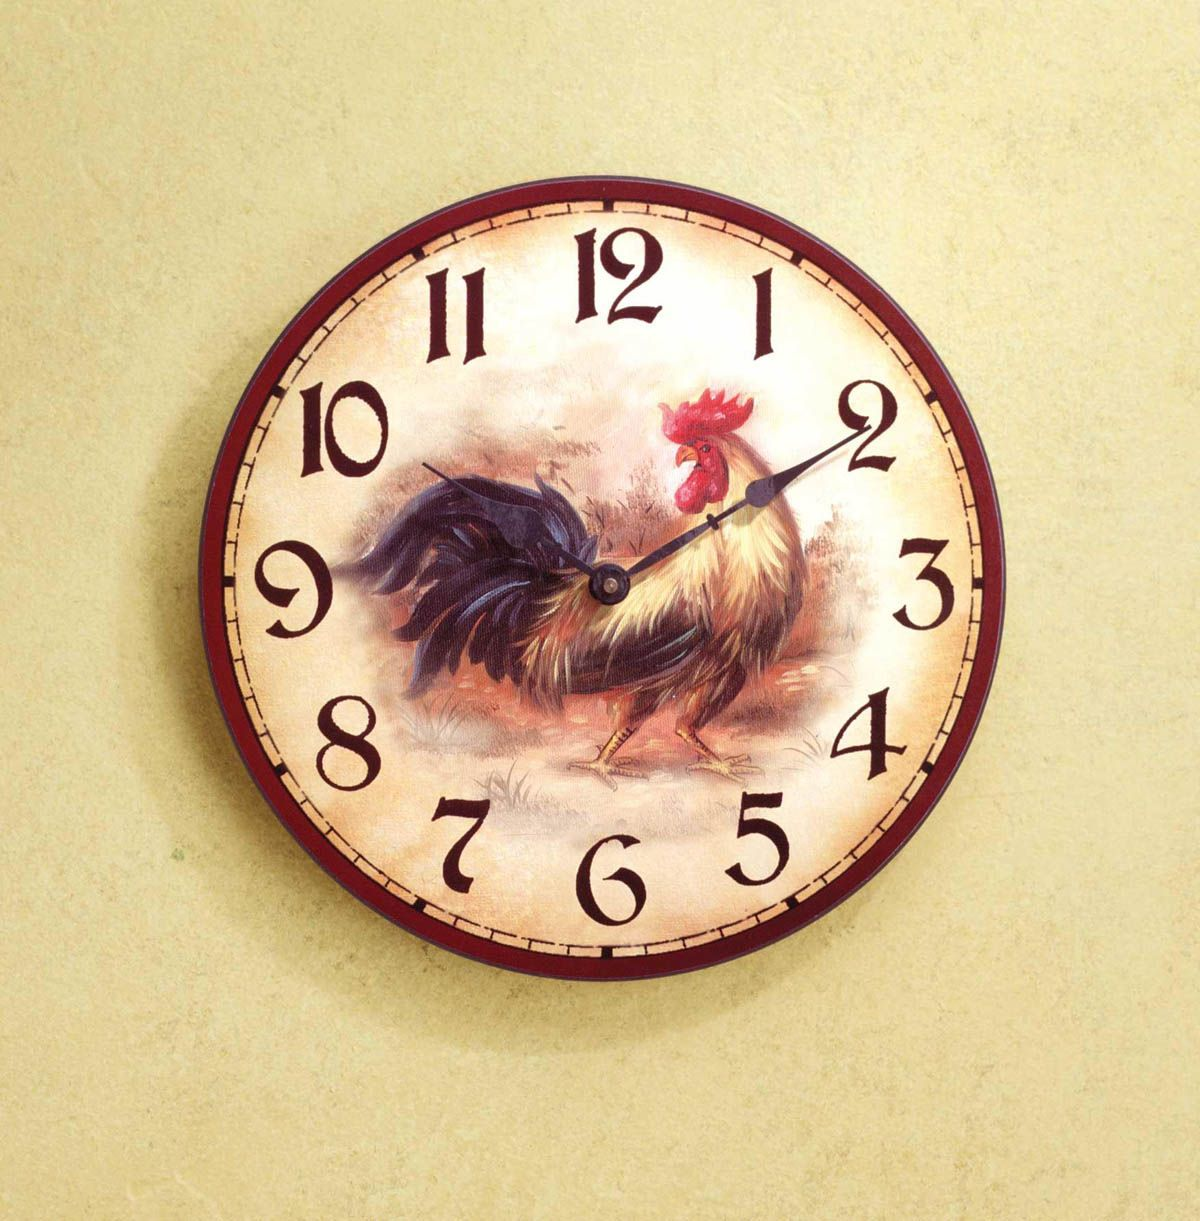 24 Beautiful Kitchen Wall Clocks | Pinterest | Kitchen wall clocks ...